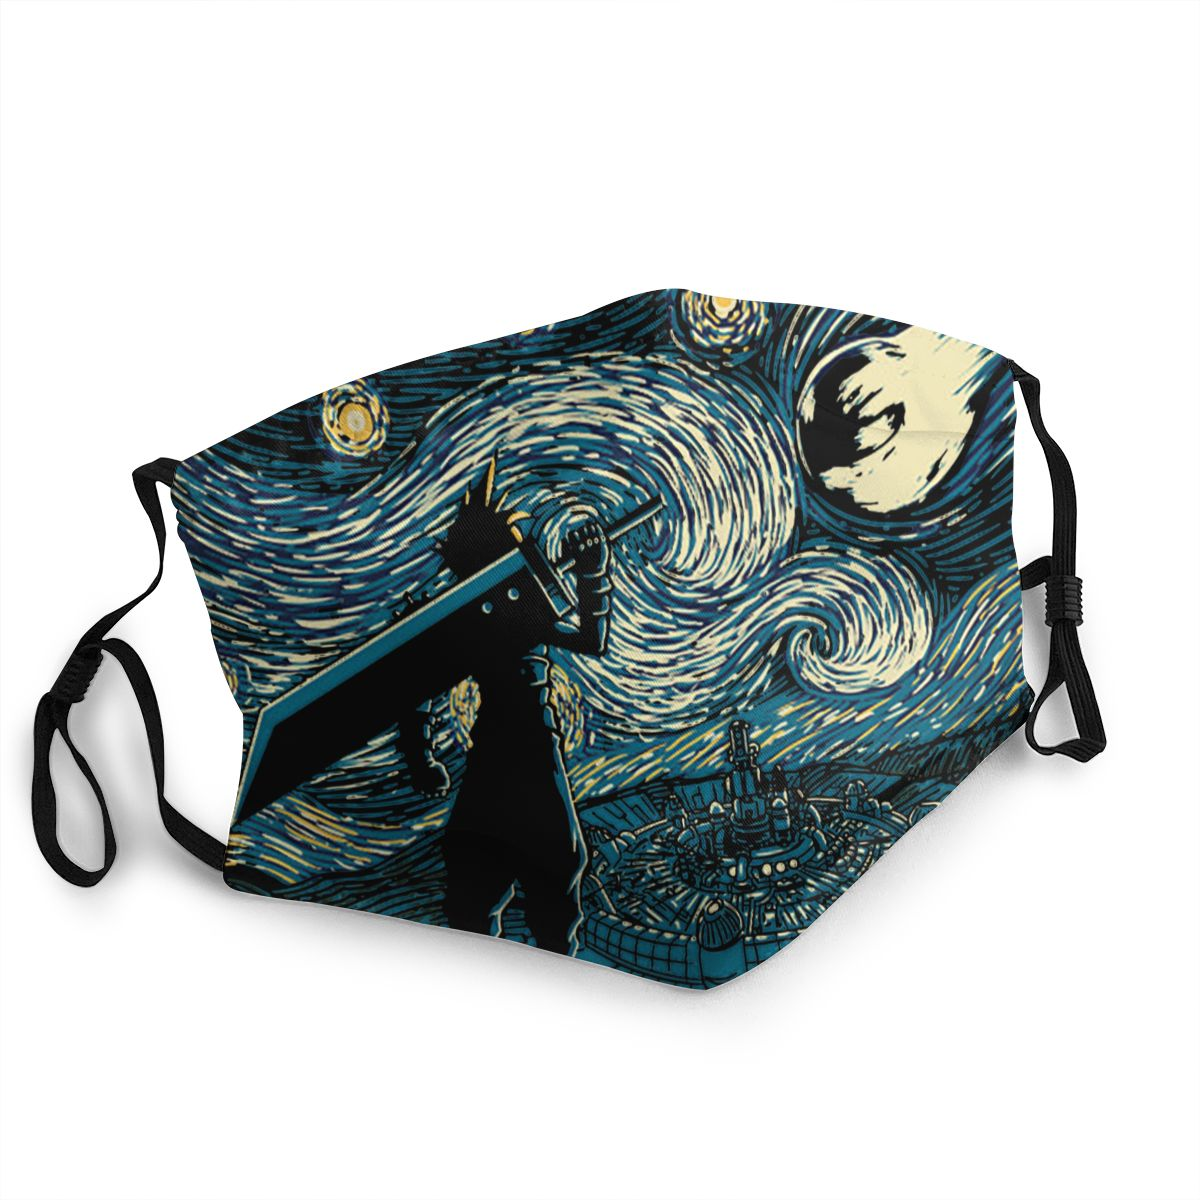 Starry Fantasy Van Gogh Final Fantasy Unisex Reusable Mouth Face Mask Game Anti Haze Dustproof Protection Cover Respirator